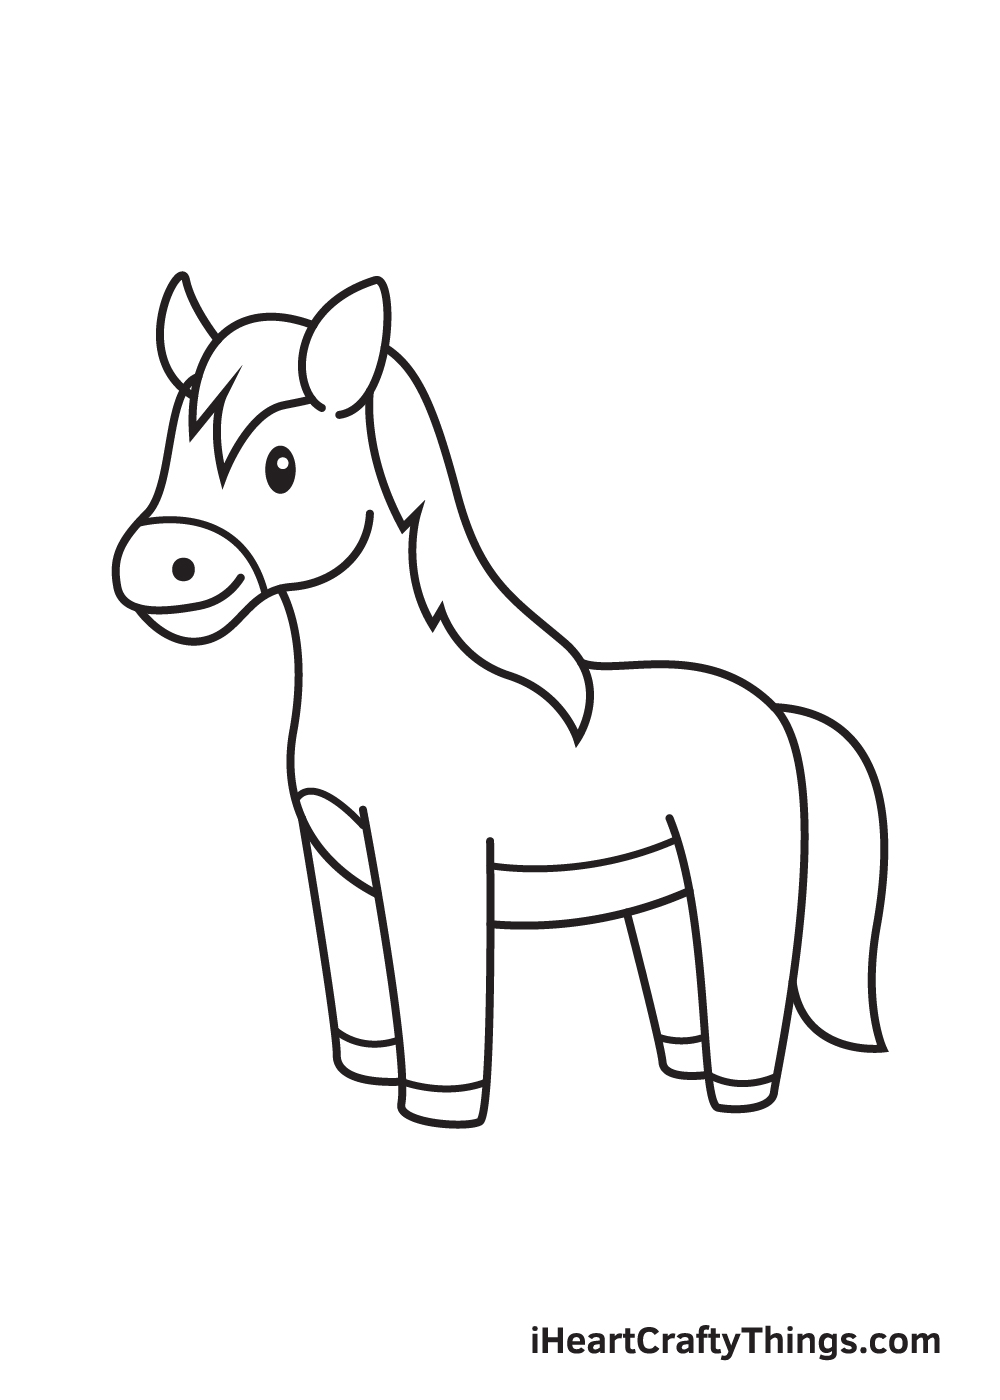 horse drawing - step 9